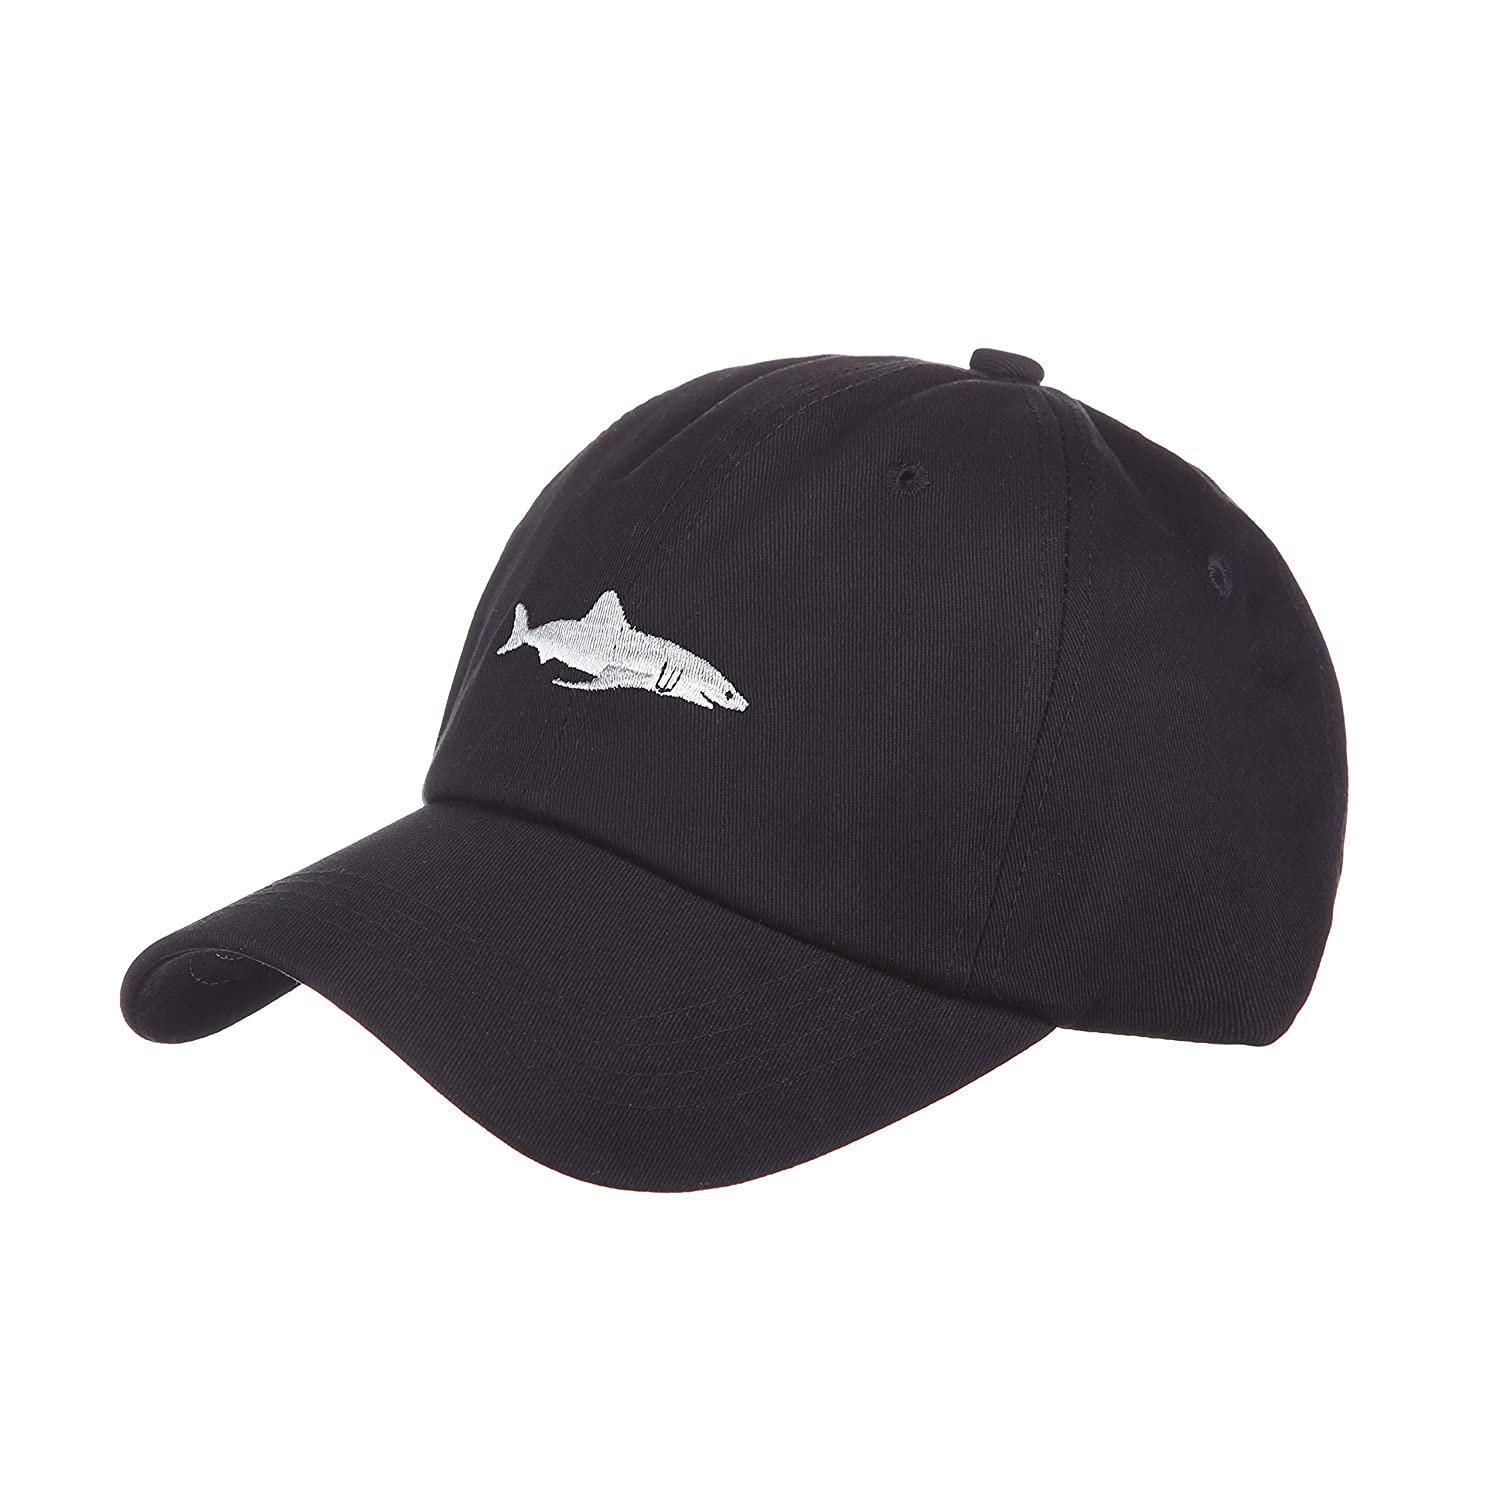 Black and Burgundy Red Soft Cotton Baseball Cap with Embroidered Cartoon  Shark Fashionable Outdoor and Recreation Casual Sun Hat for Men and Women  (Black) ... cf2f2512f96